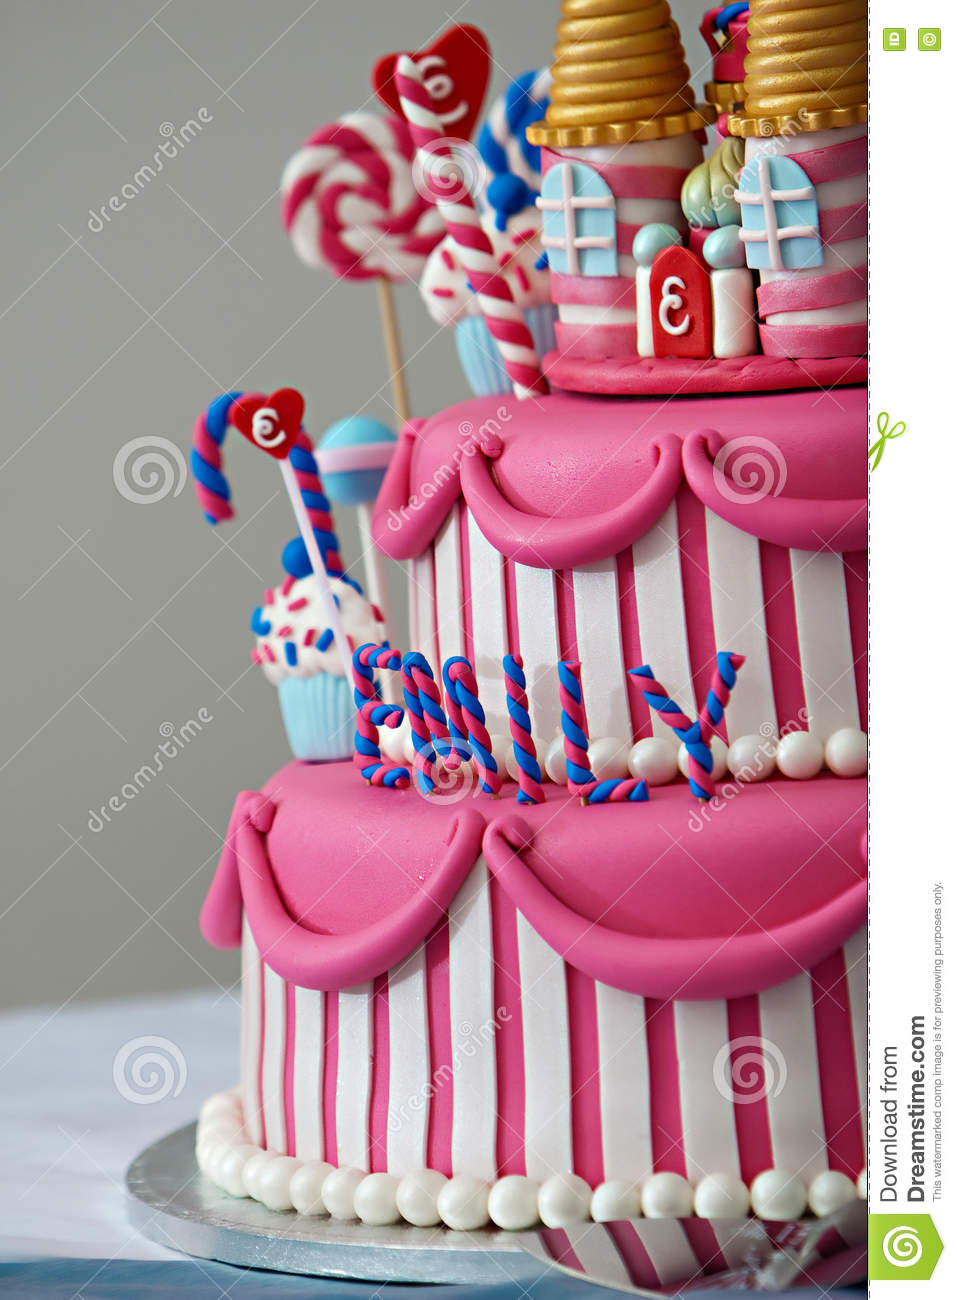 Brilliant Birthday Cake Stock Image Image Of Dessert White Candy 69701591 Funny Birthday Cards Online Aboleapandamsfinfo